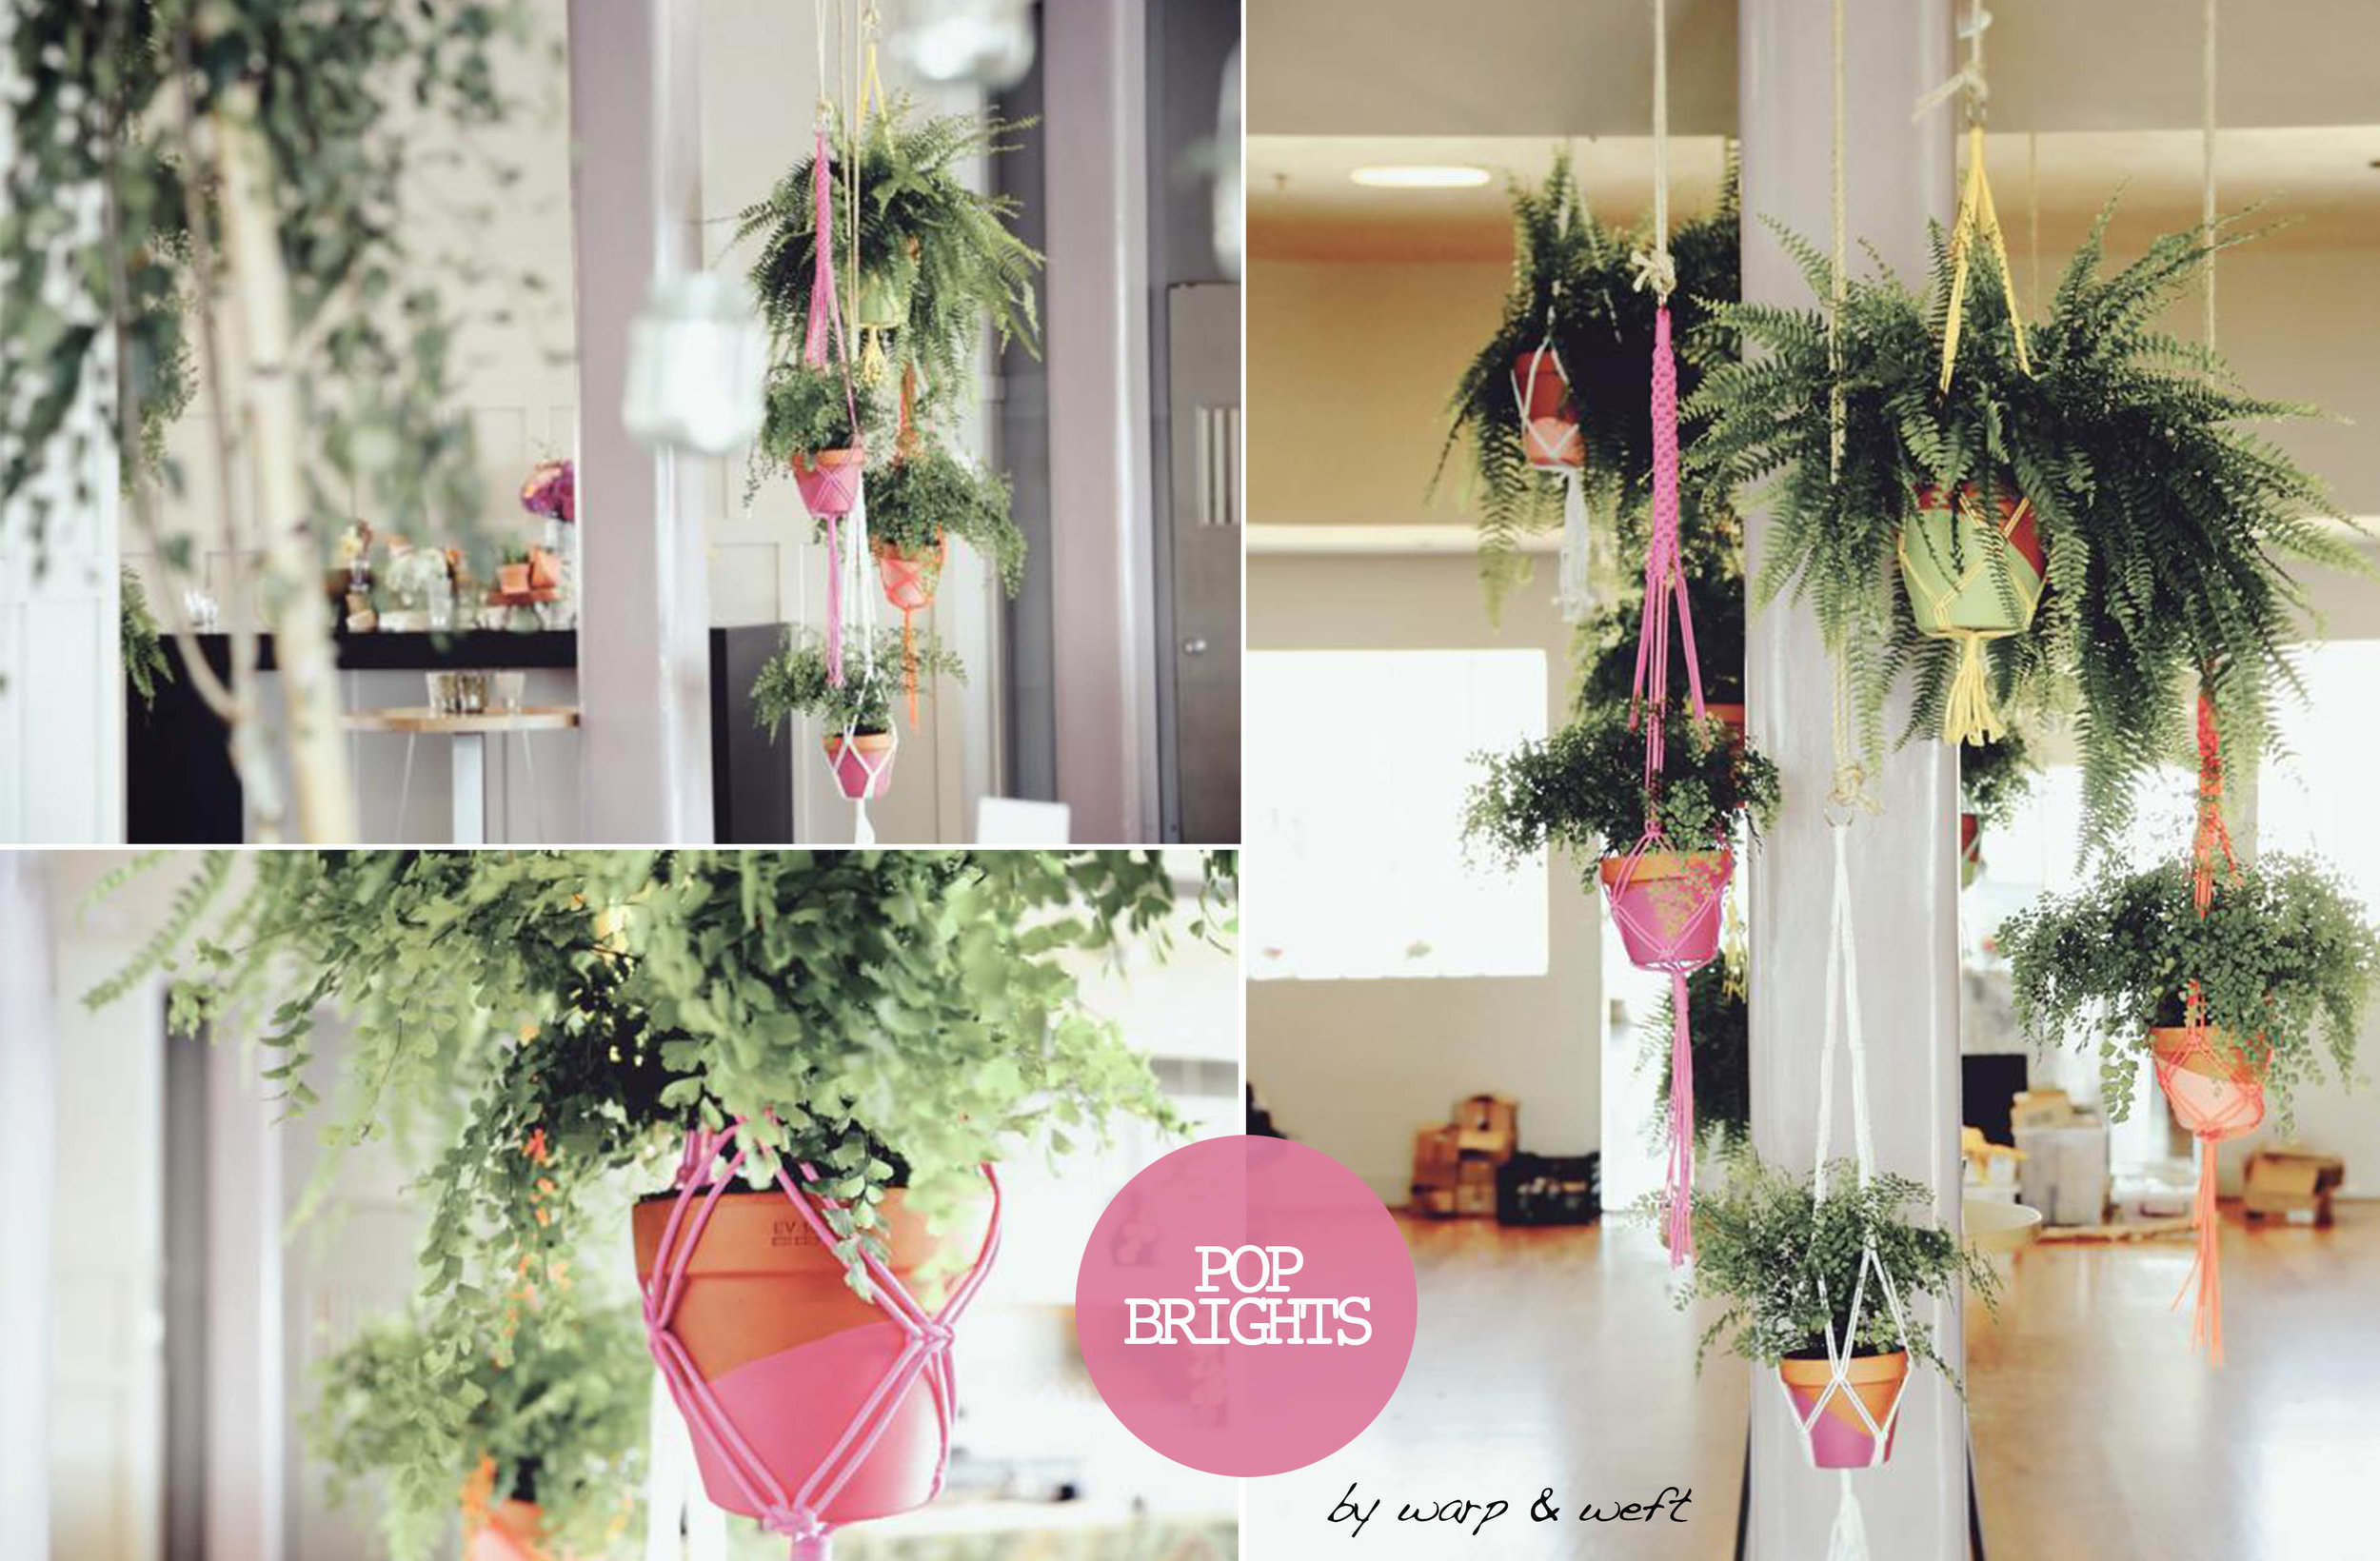 This Macrame range are designed to be hang as a cluster of bright and cheerful plant hangers. They come in one size and are great for small or larger spaces. The collection comes in arrange of 4 colour, each coming a their own terracotta pot. The pot is half painted with an accent colour to match the macrame cord.